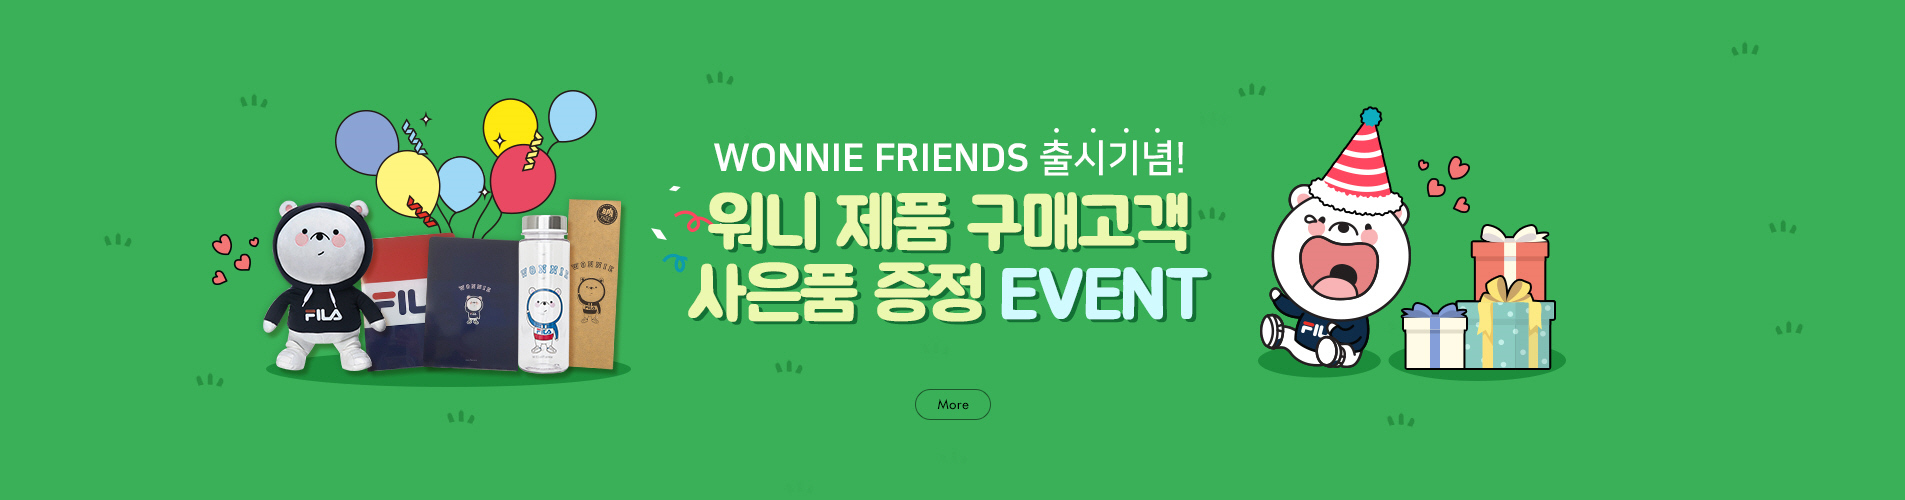 WONNIE FRIENDS 출시기념